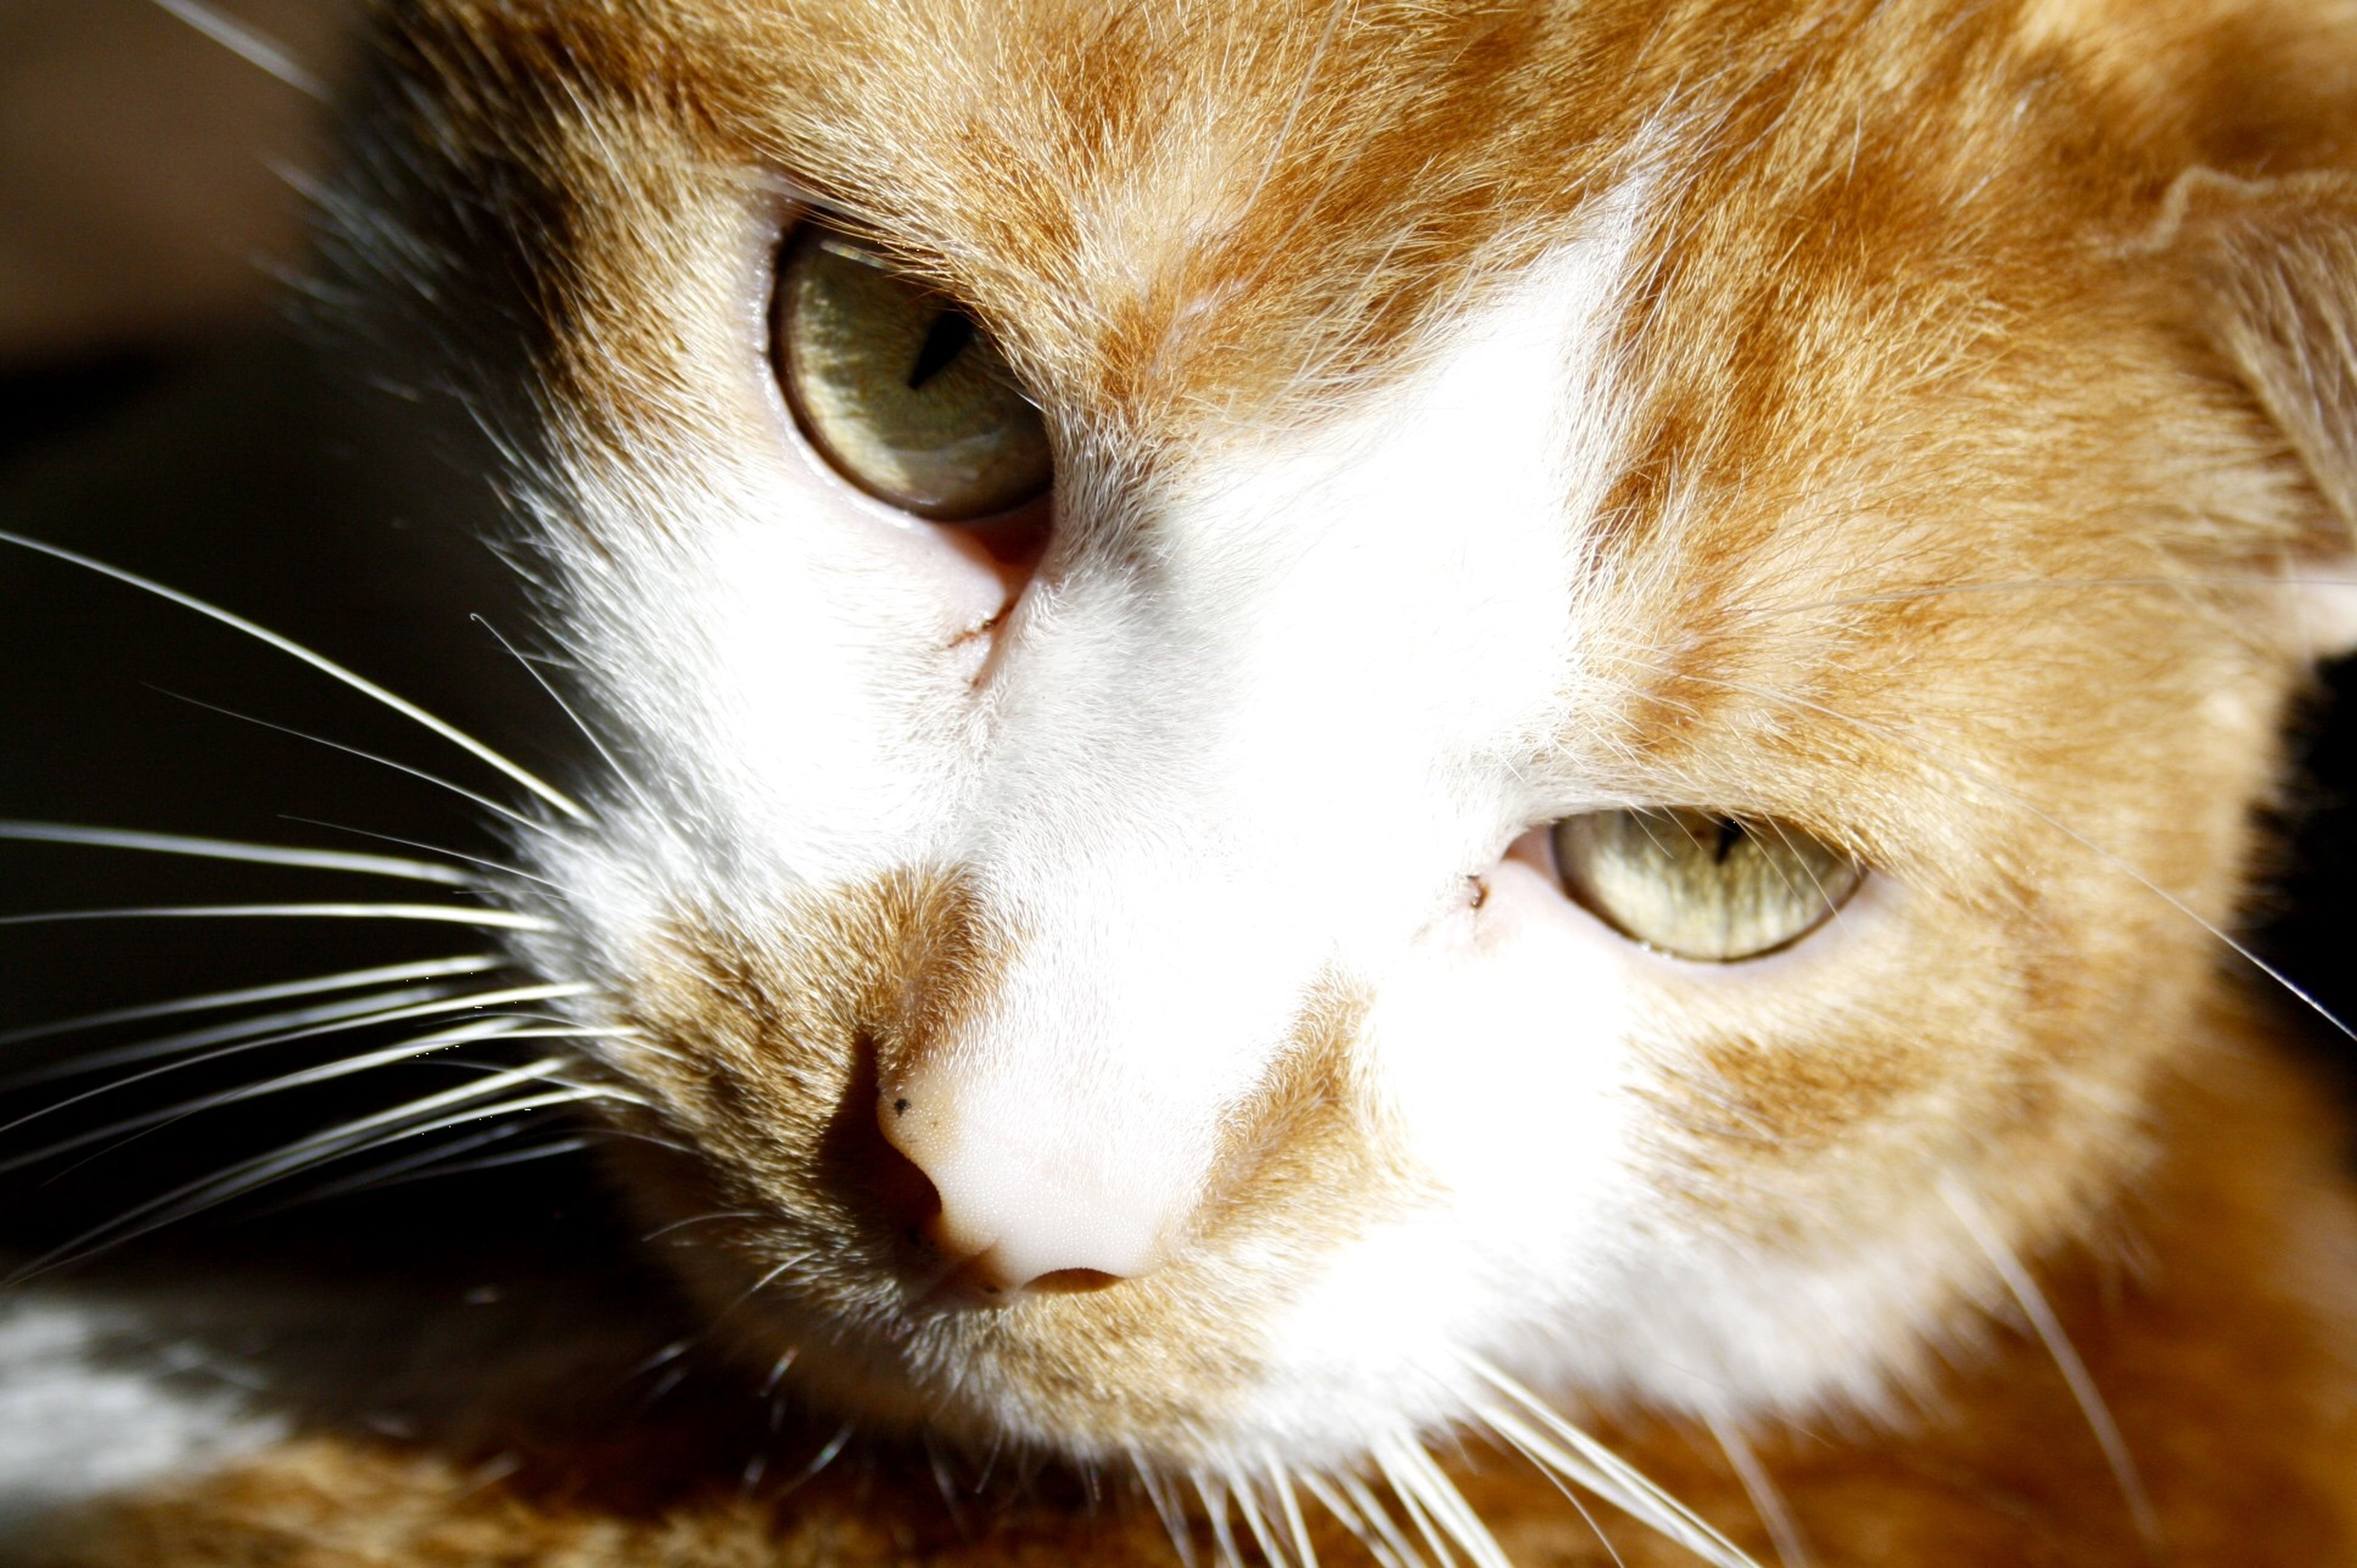 one animal, pets, animal themes, domestic animals, mammal, domestic cat, close-up, whisker, animal head, cat, animal eye, animal body part, feline, portrait, looking at camera, focus on foreground, indoors, snout, animal hair, staring